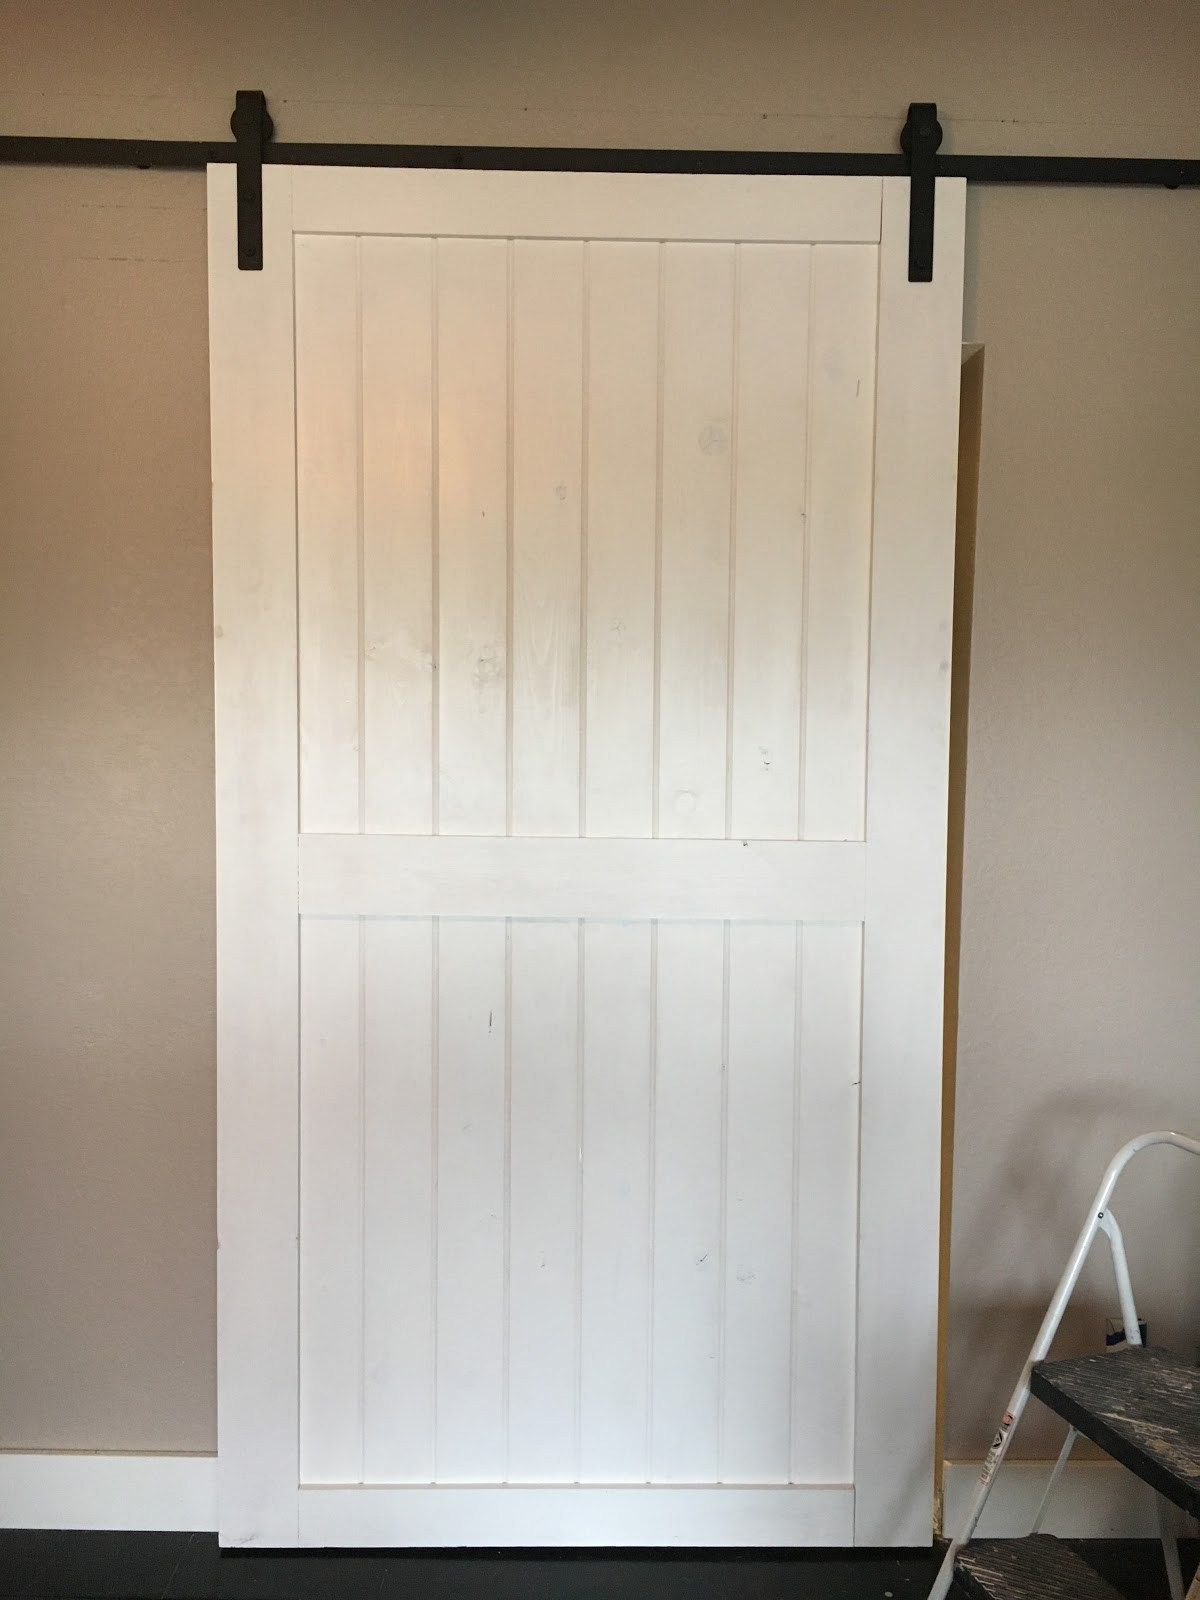 Diy Sliding Door Using Hardware Found On Ebay Over Inspired Featured On Remodelaholic Barn Doors Sliding Diy Barn Door Diy Sliding Door